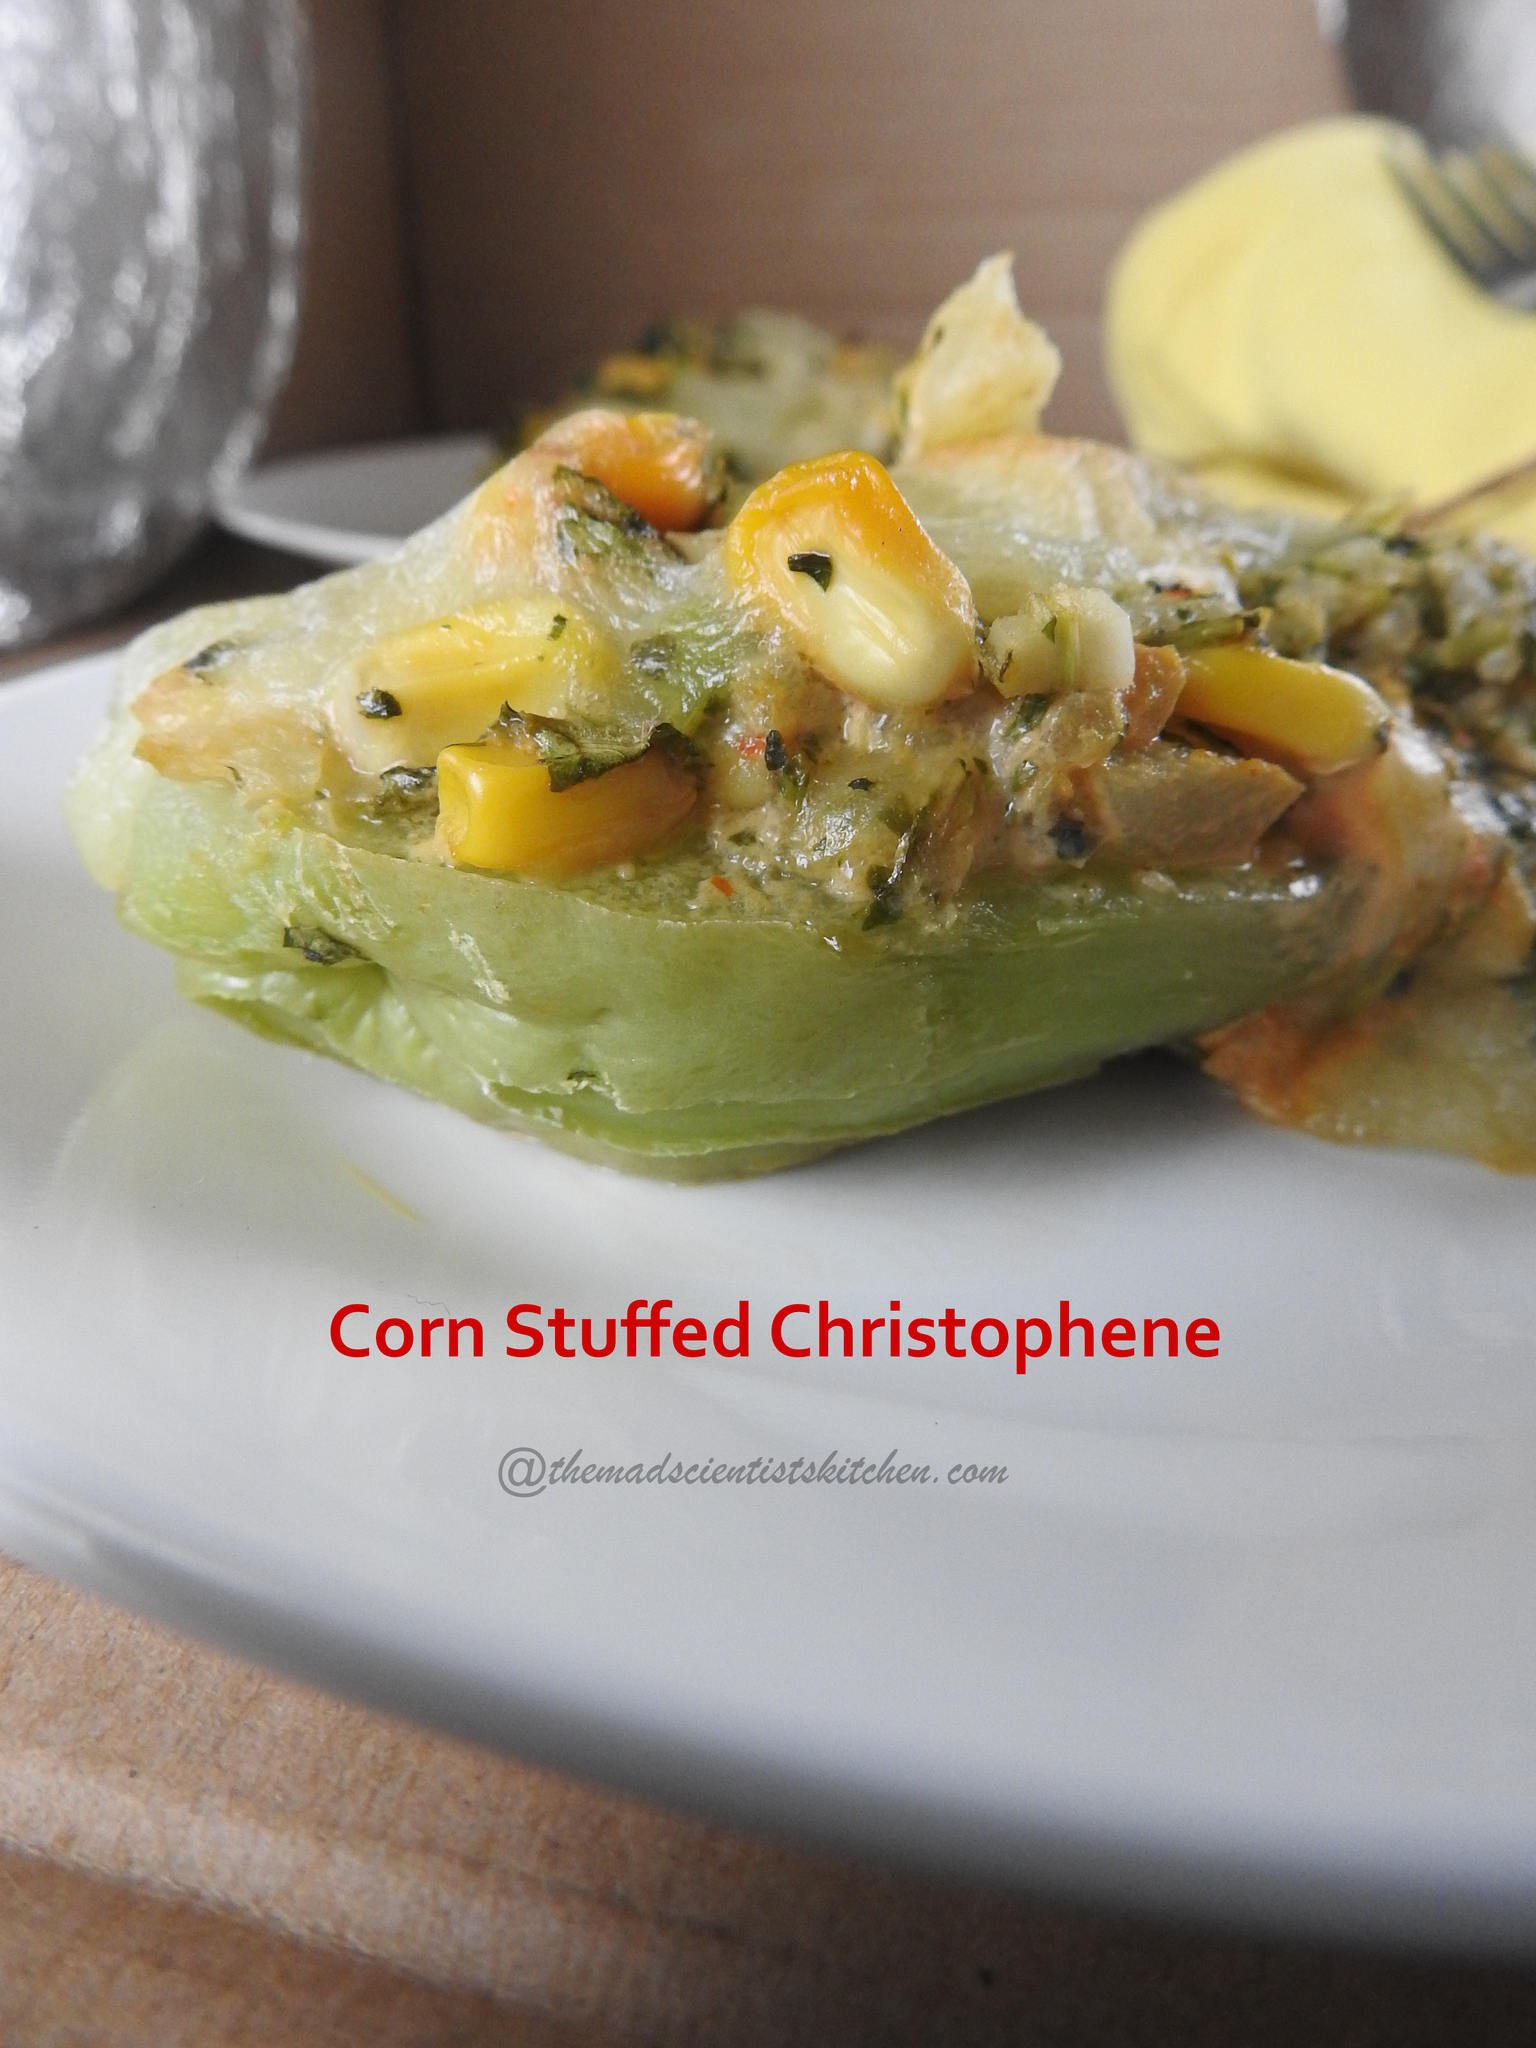 Corn Stuffed Christophene,Corn Stuffed Chayote